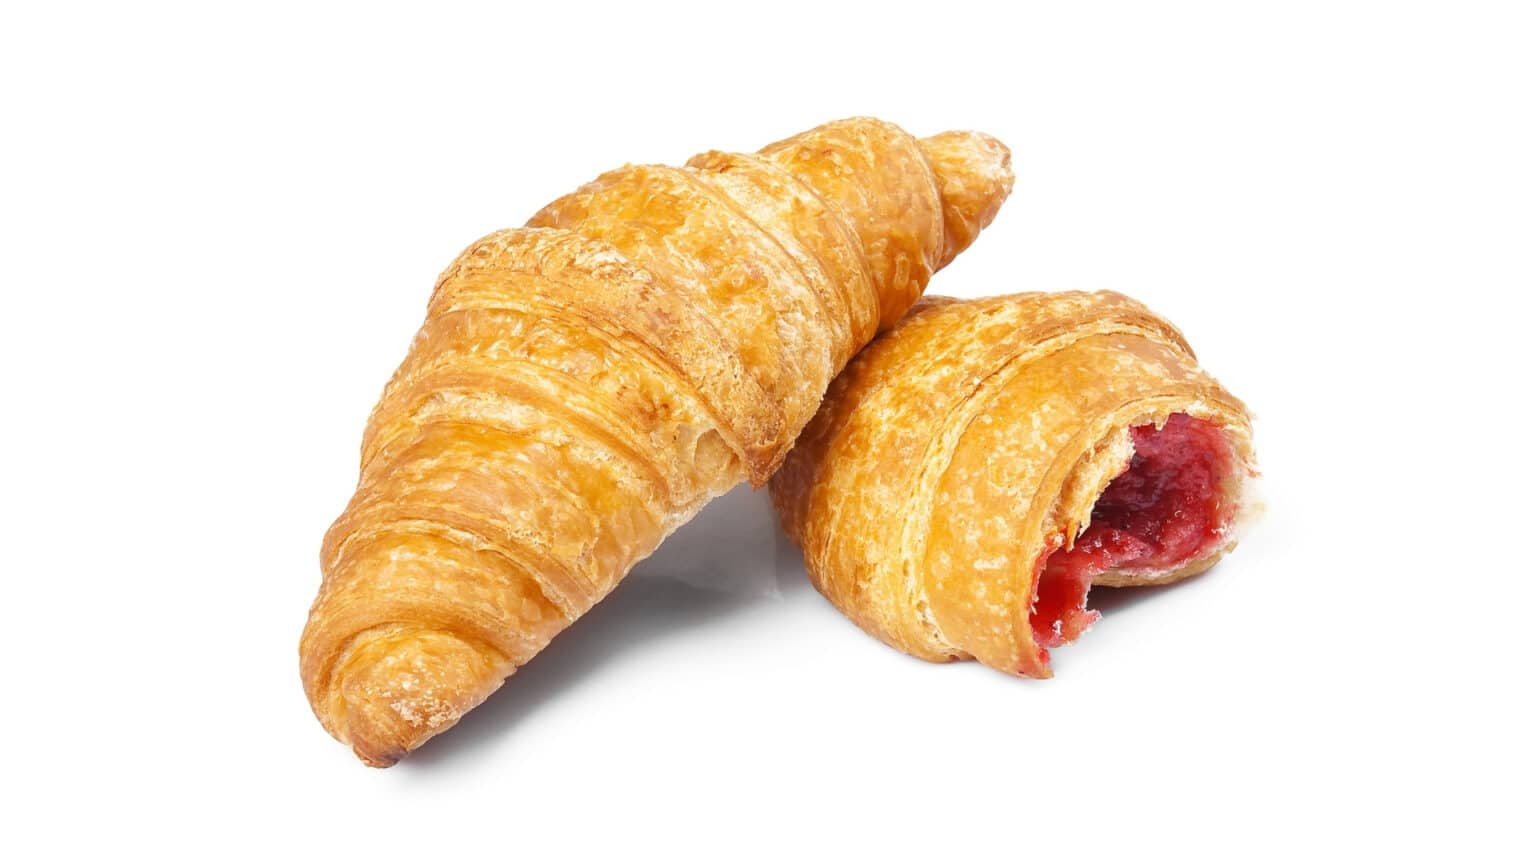 Roller for Cutting Croissants